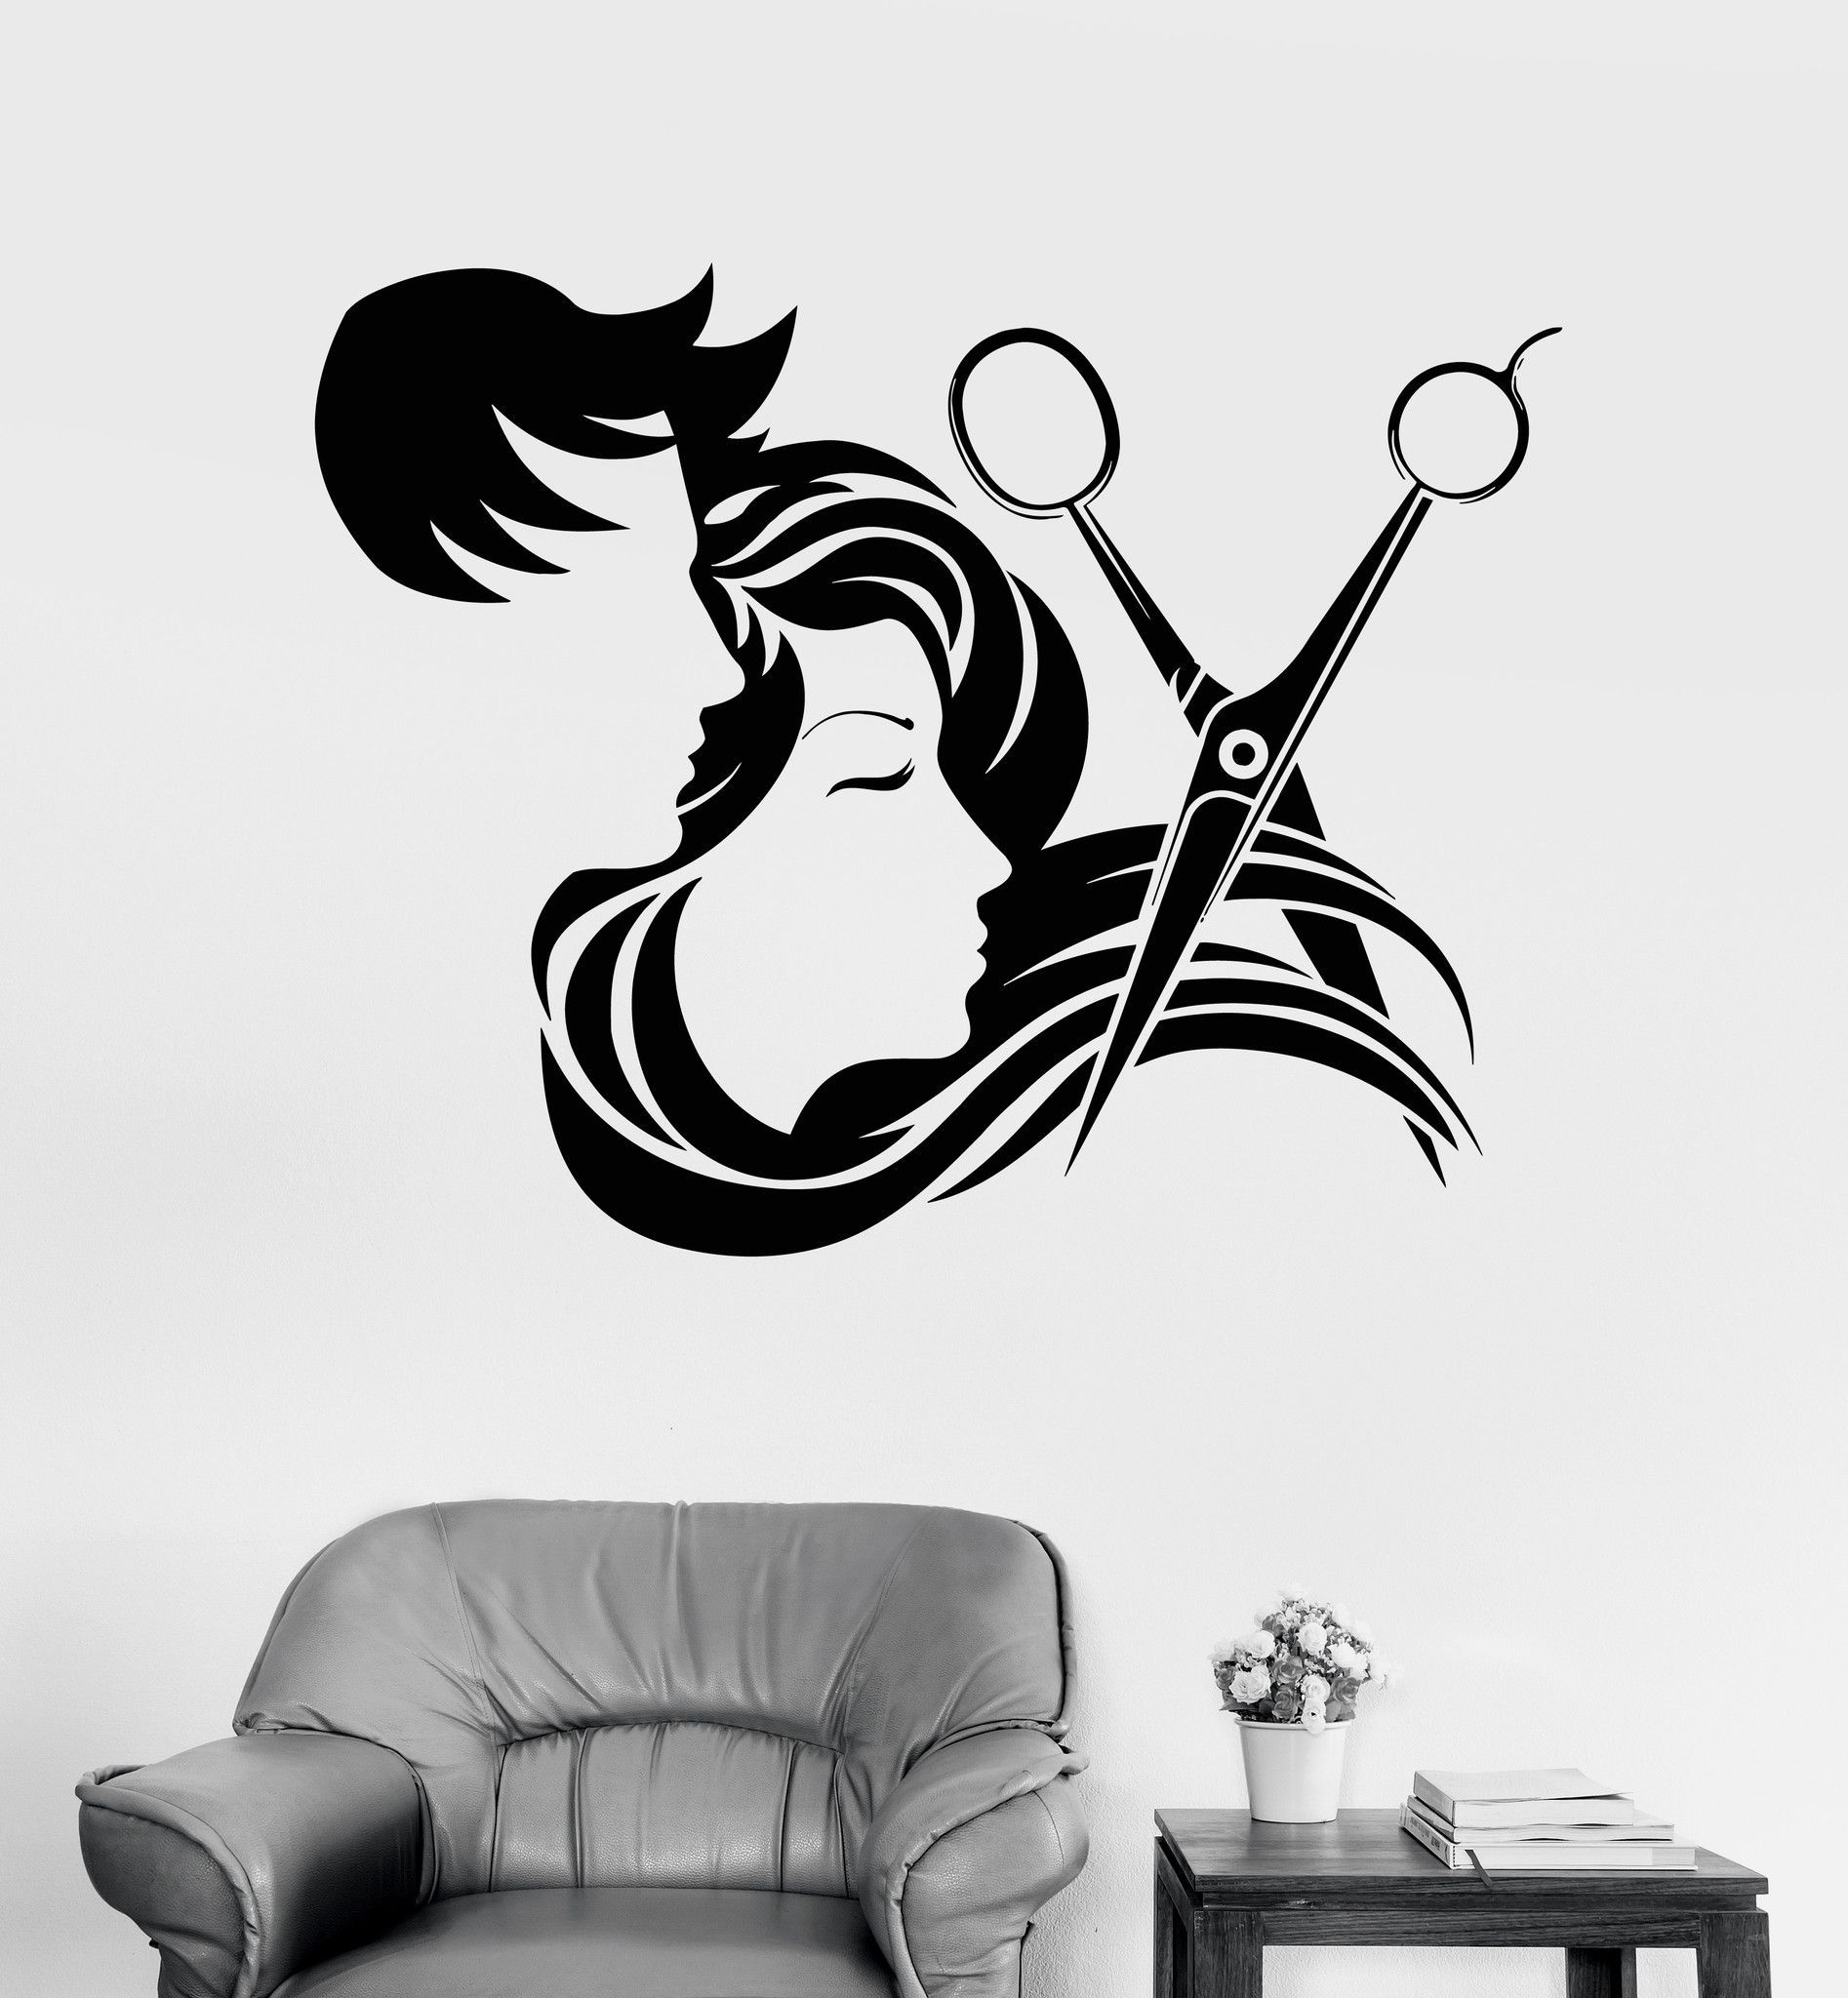 Salon De Coiffure Diamant Noir Vinyl Wall Decal Hair Salon Stylist Hairdresser Barber